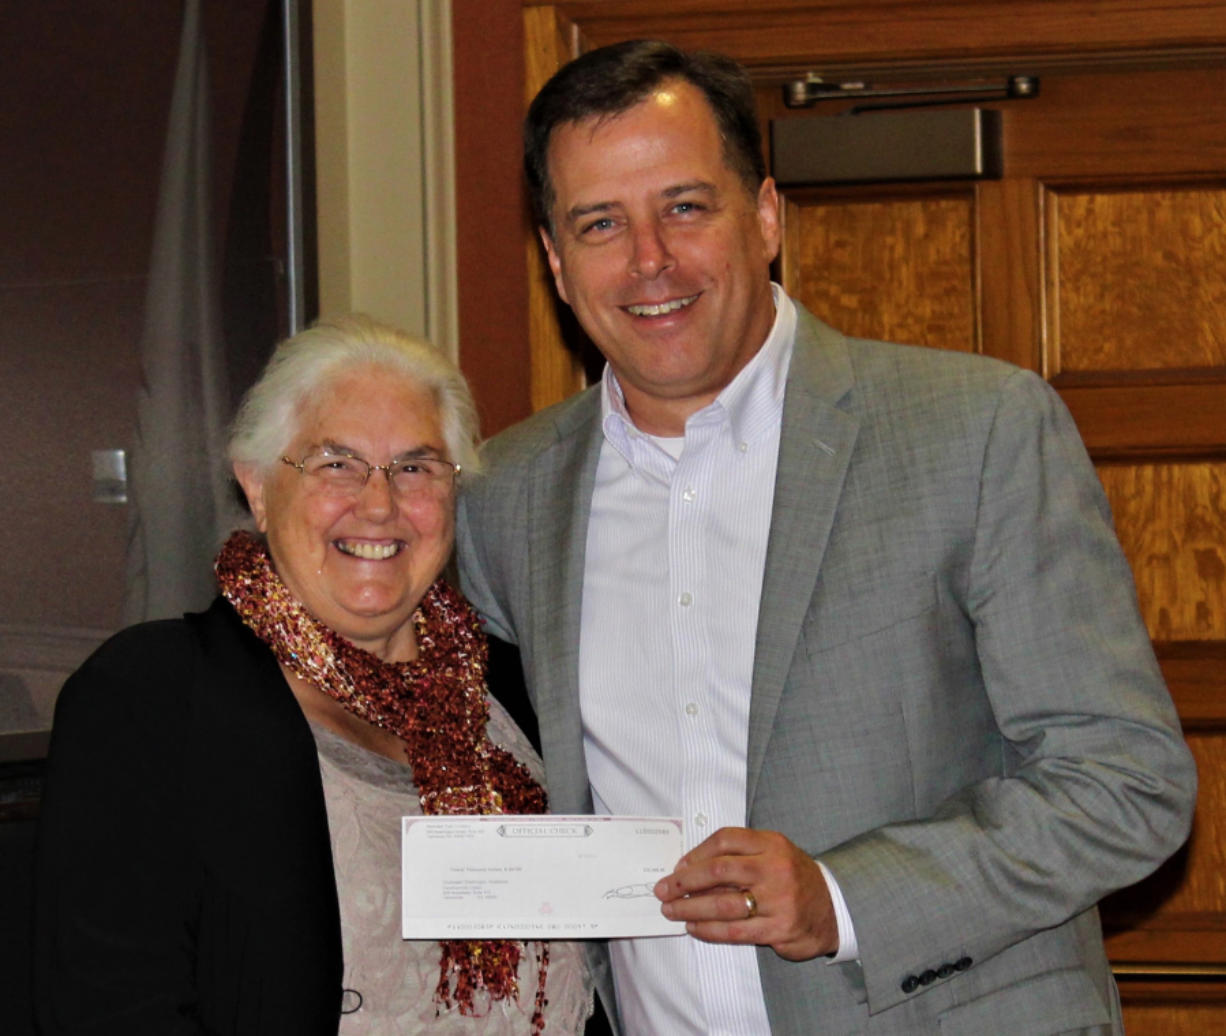 Honorable Frank L. and Arlene G. Price Foundation Executive Director Kay Dalke-Sheadle, left, presents a check for $20,000 to John Vanderkin, Workforce Southwest Washington board chairman, to help fund a Kelso youth workforce training program.